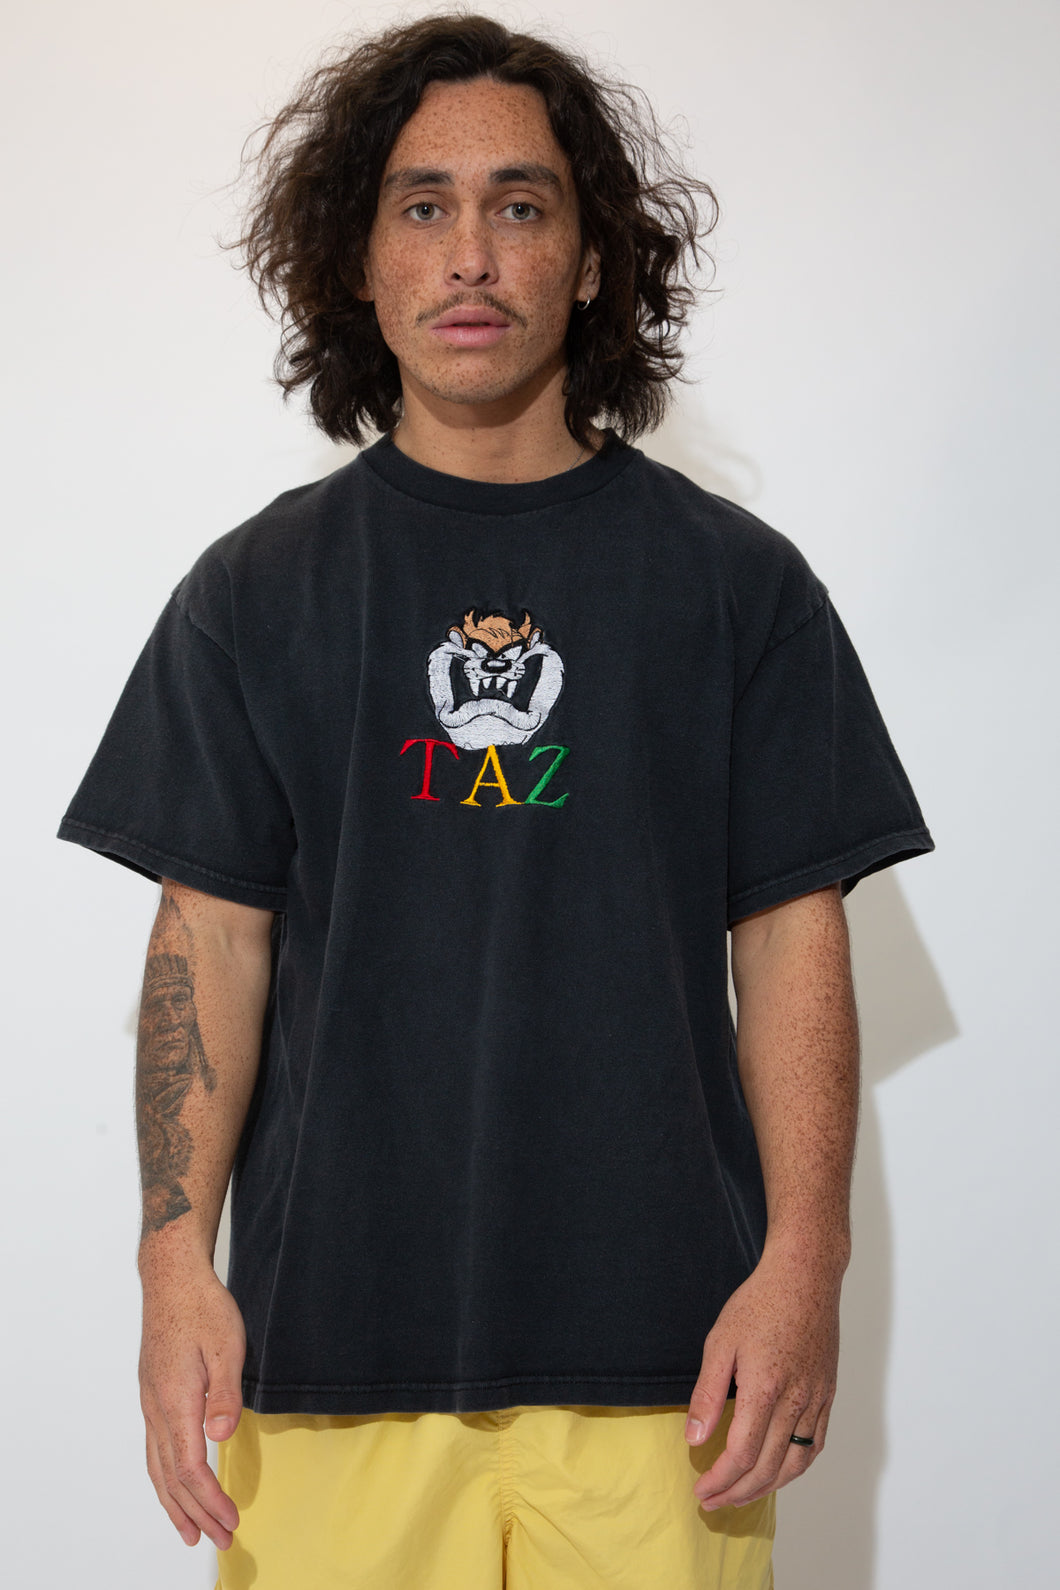 taz embroidered graphic tee in black. 90s vintage. magihocllow!